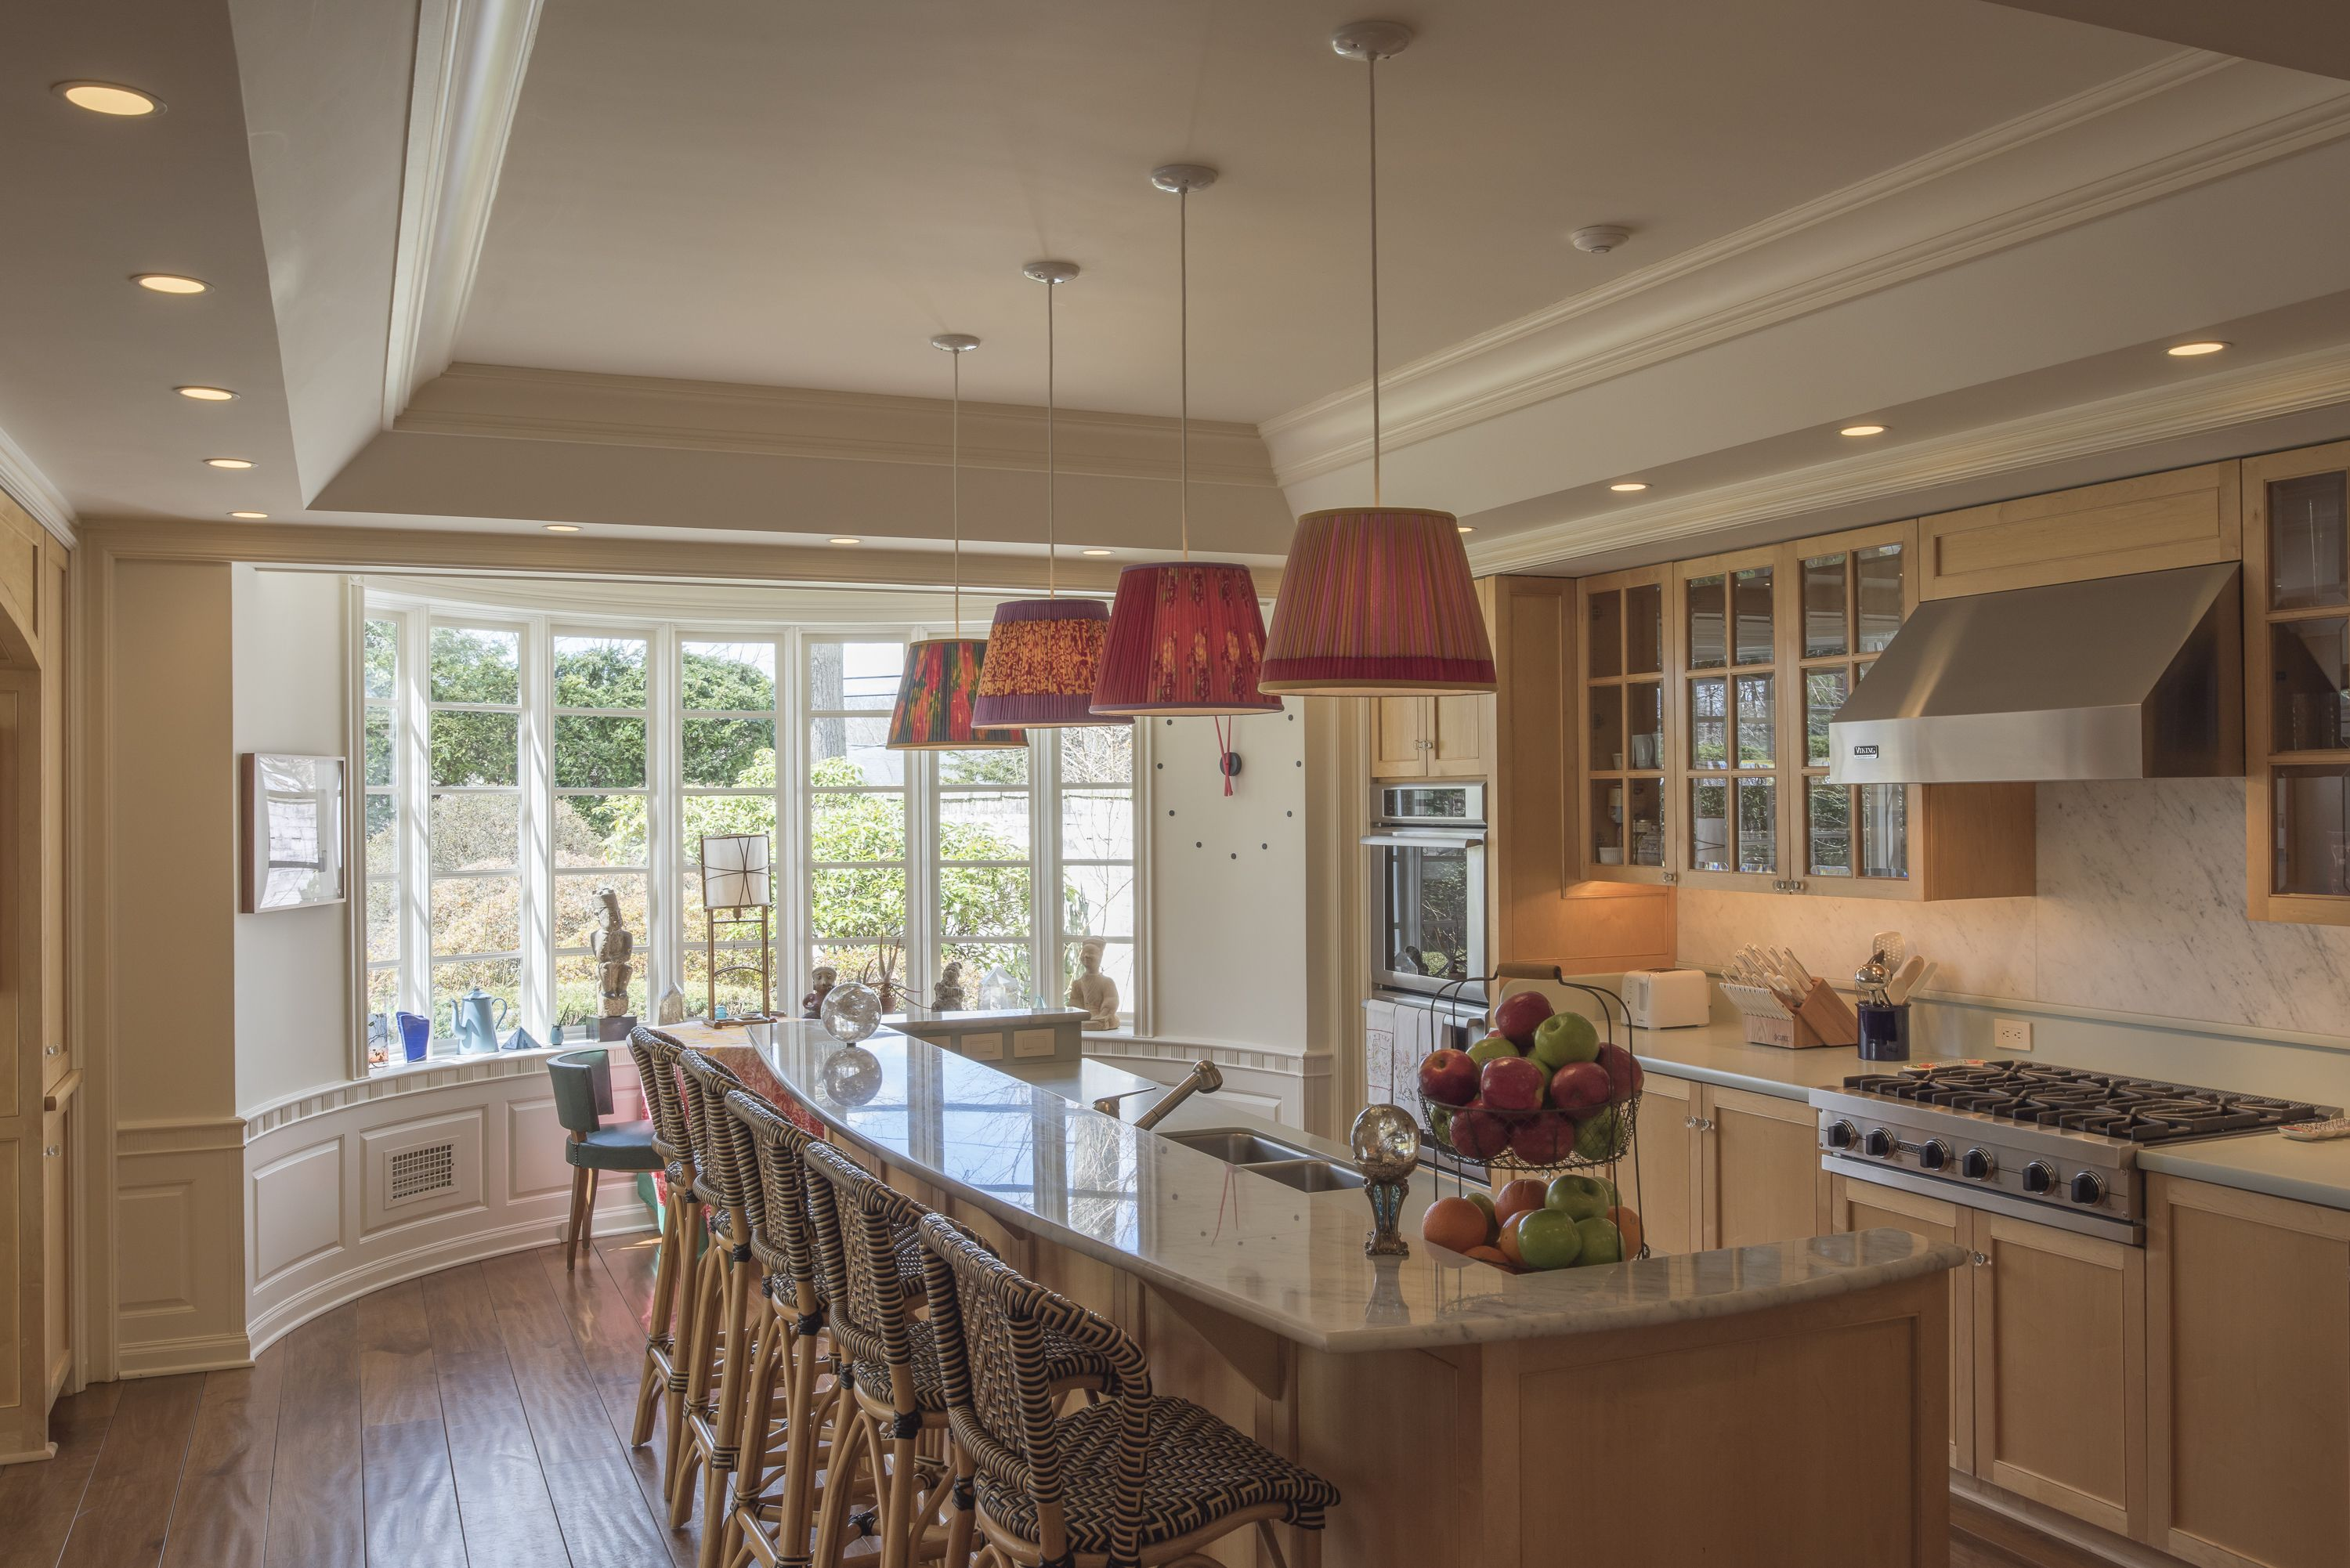 The home's large eat-in kitchen is spacious enough for the whole family.